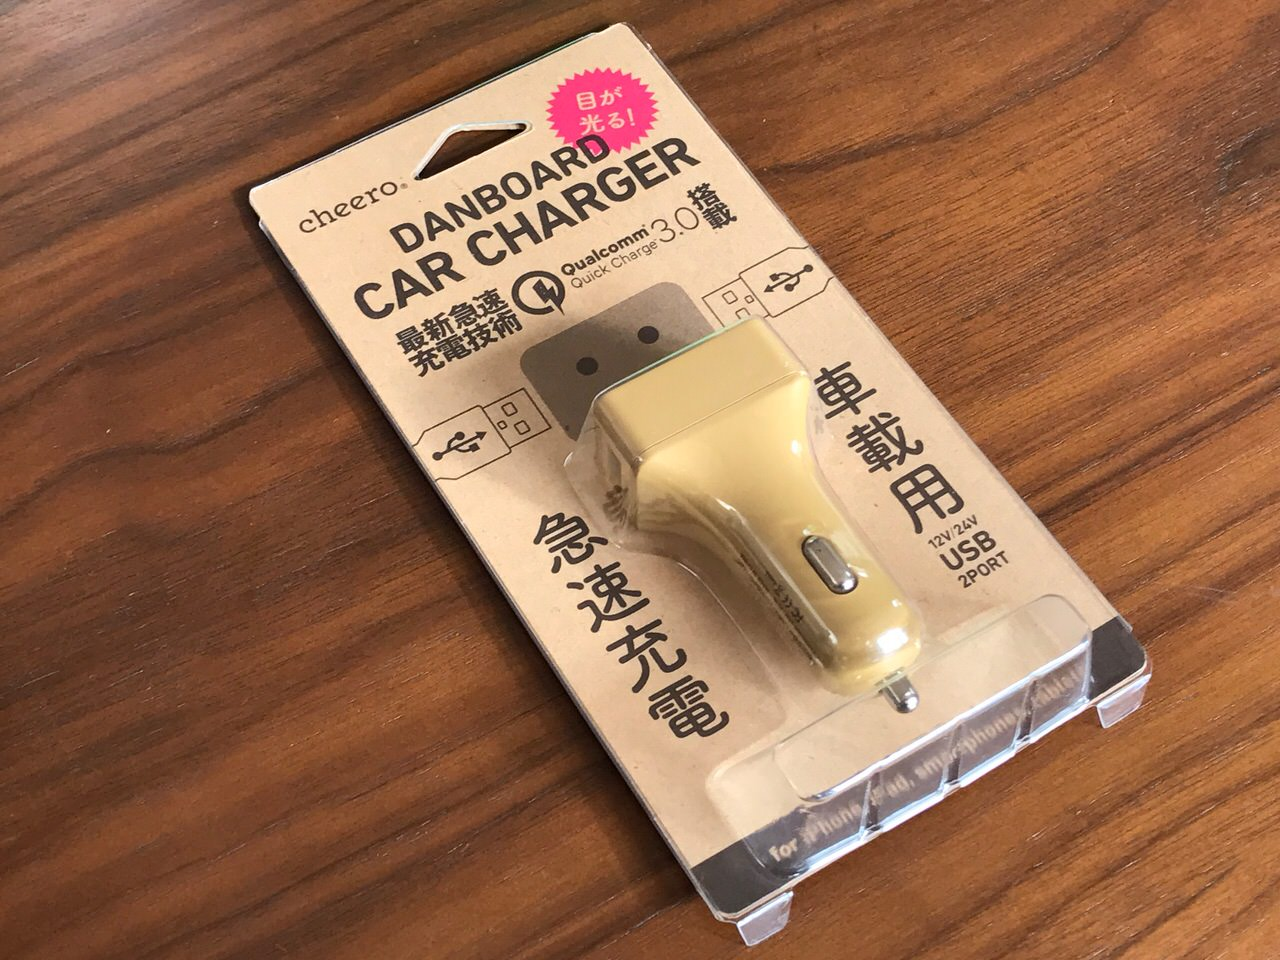 Danboard car charger 3645